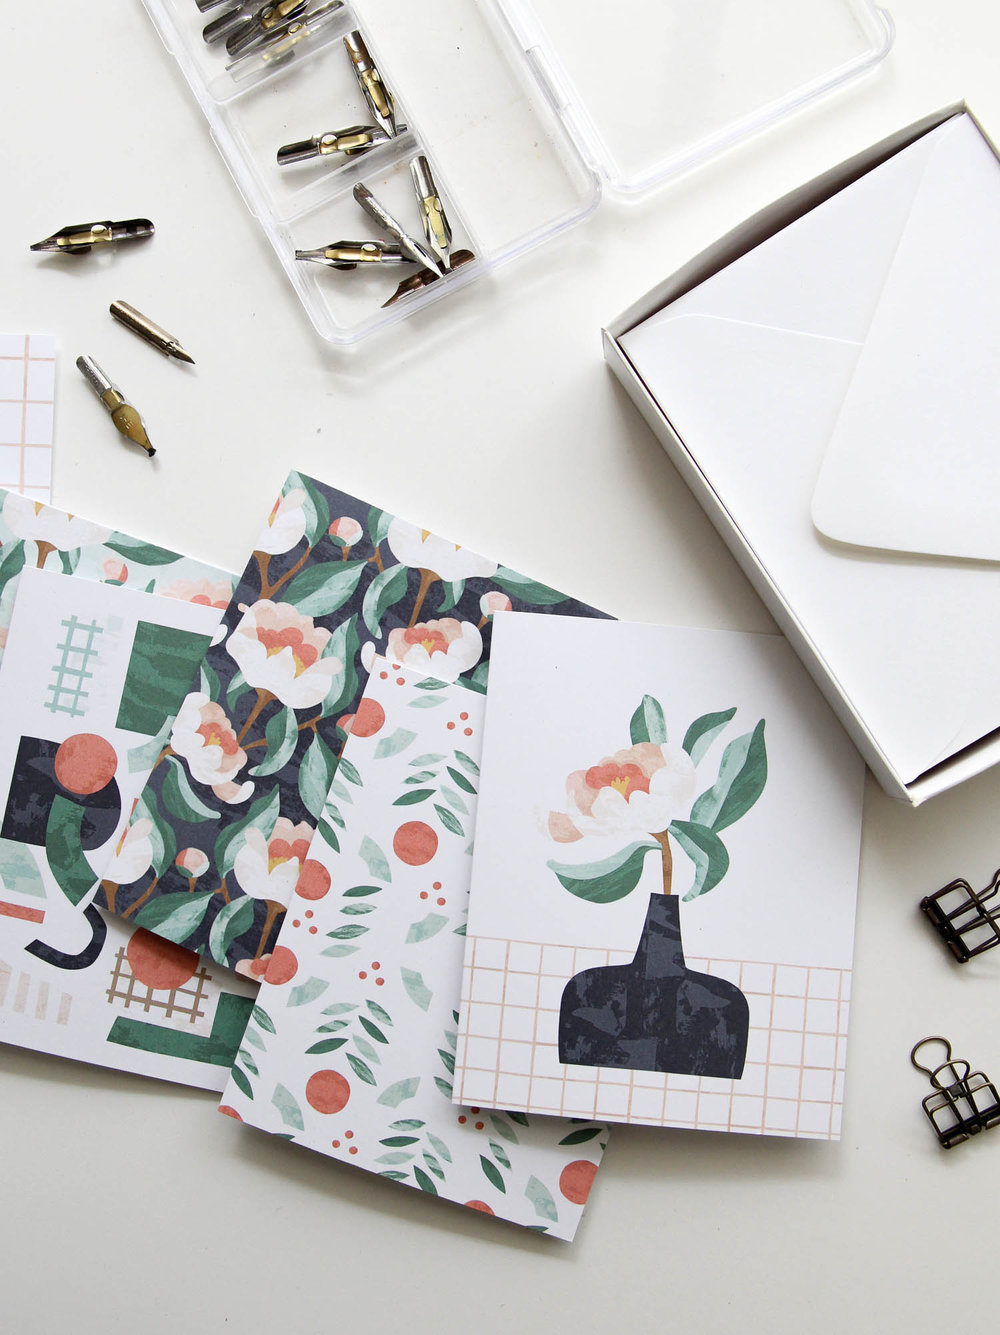 Coral Charm Boxed card Set - Our Limited Edition Coral Charm Boxed Card set features 6 original illustrations. Printed without text to suit any occasion, these notecards are perfect for letter-writing or gift-giving.